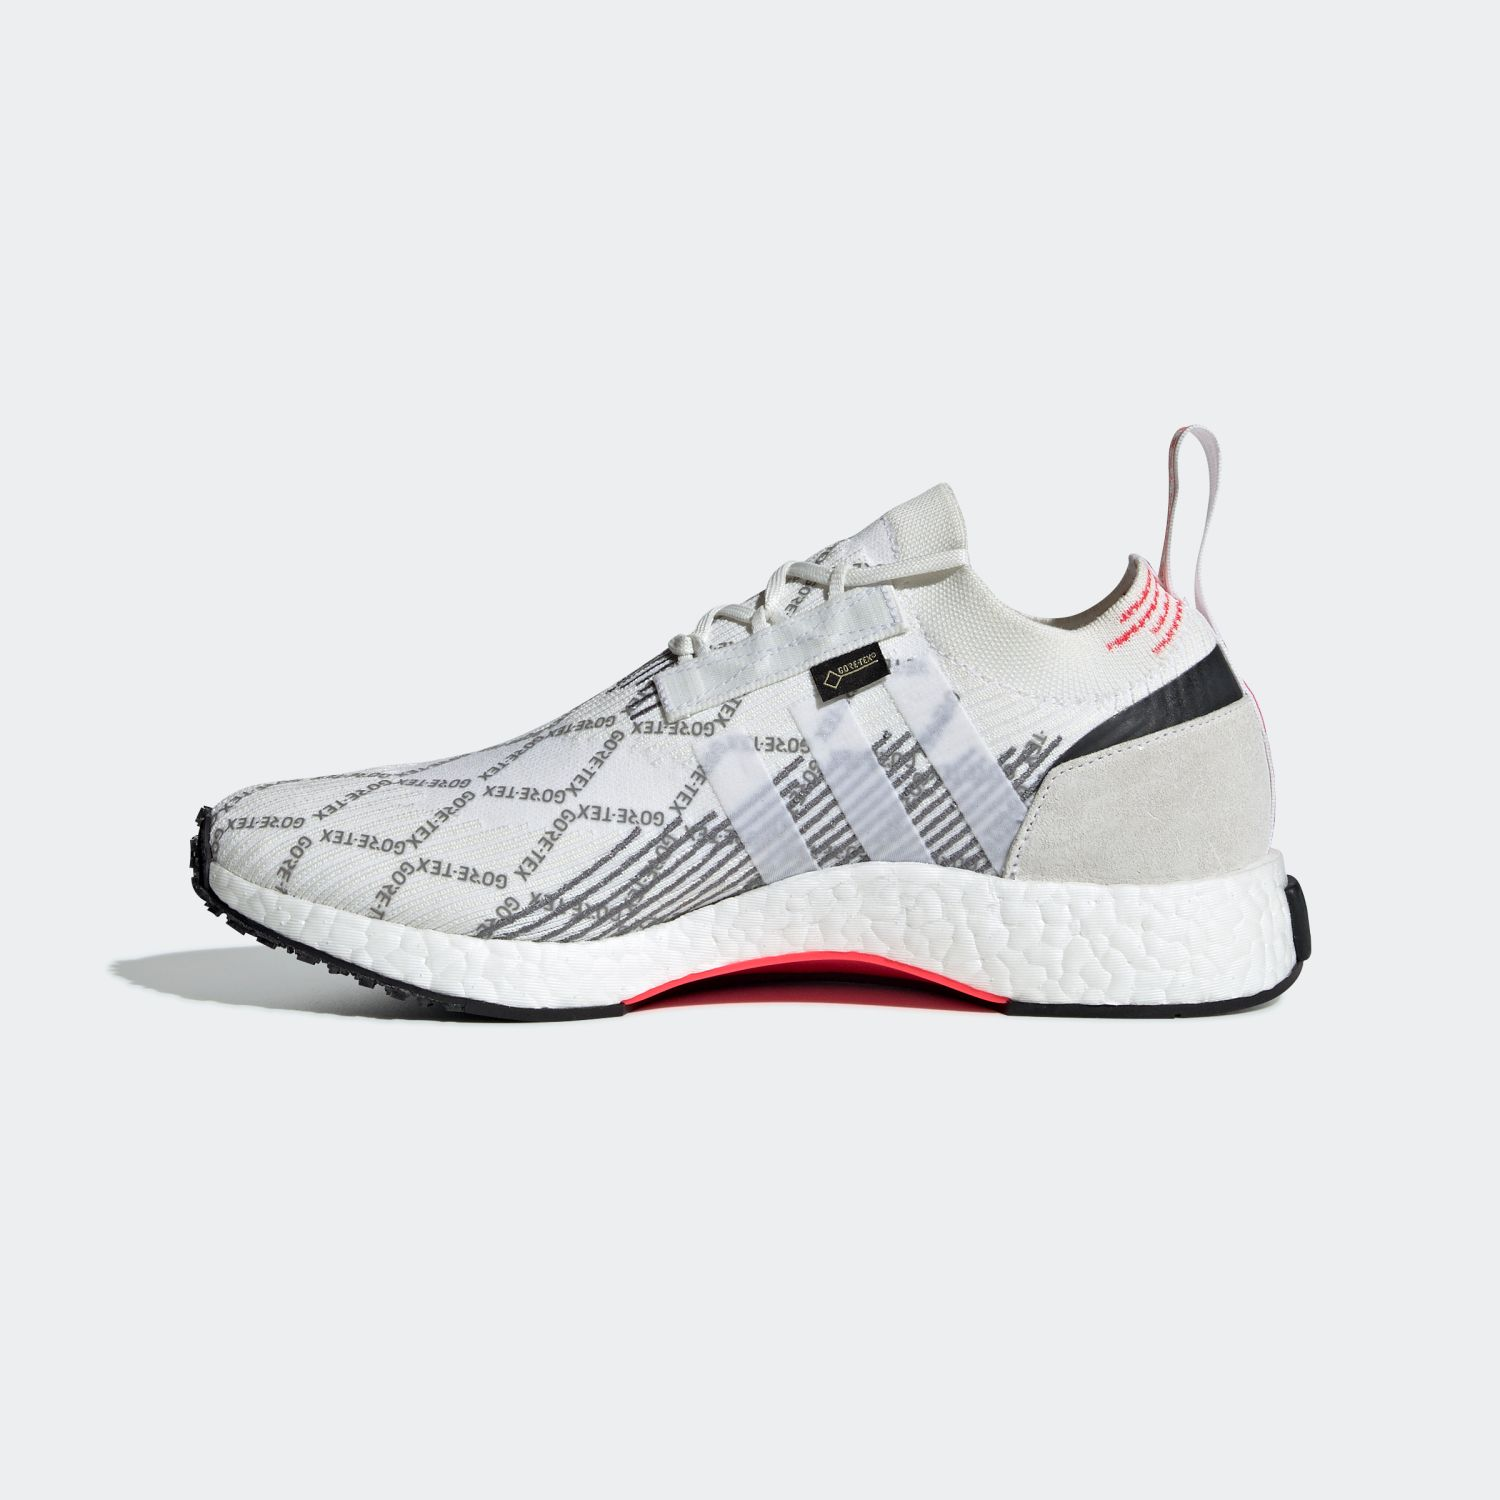 NMD Racer GORE-TEX White [2]